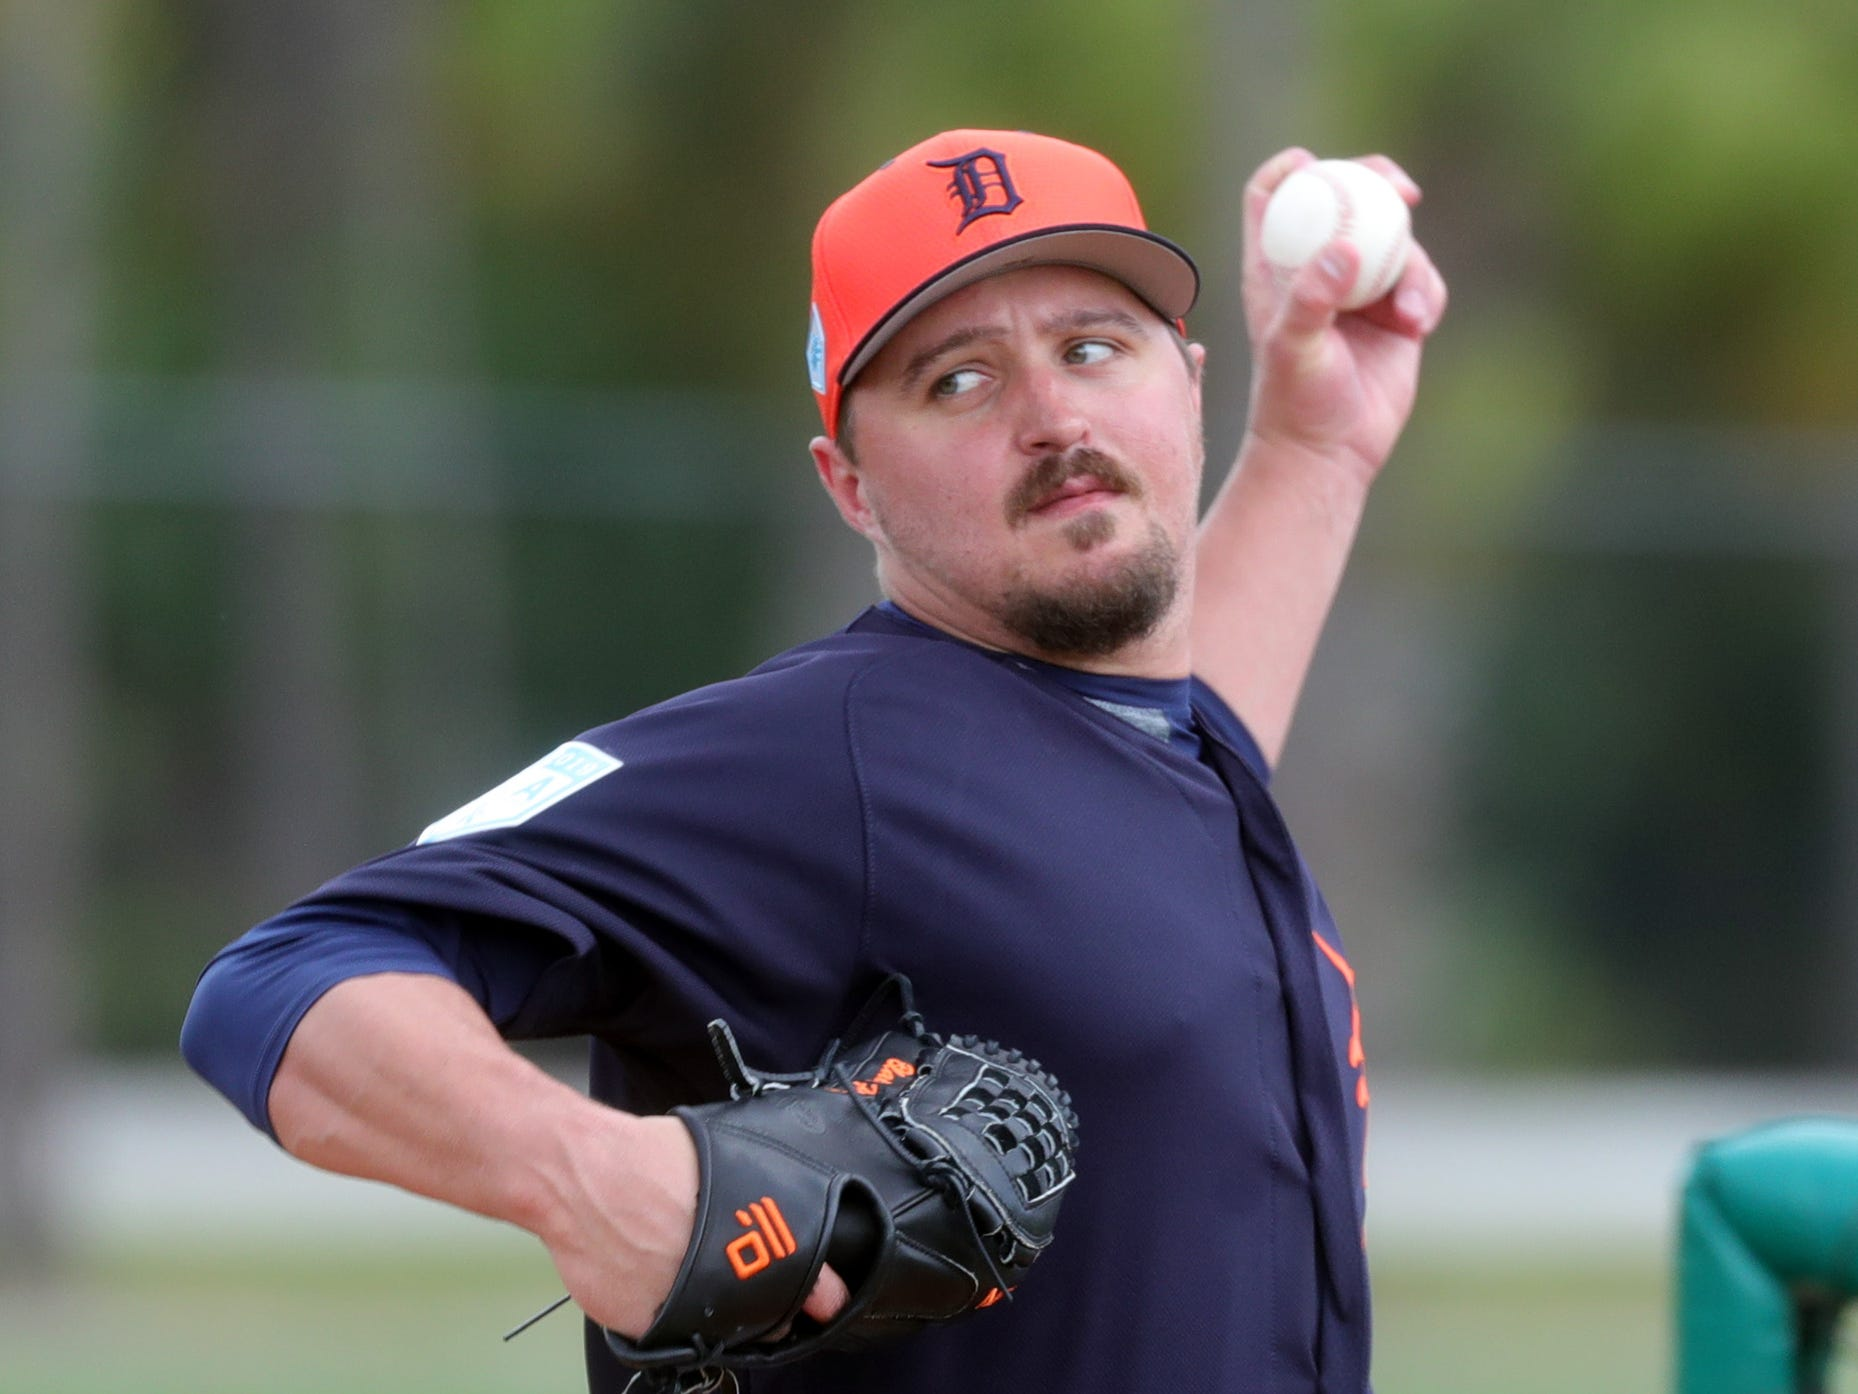 Tigers pitcher Blaine Hardy pitches during spring training Wednesday, Feb. 20, 2019, at Joker Marchant Stadium in Lakeland, Fla.